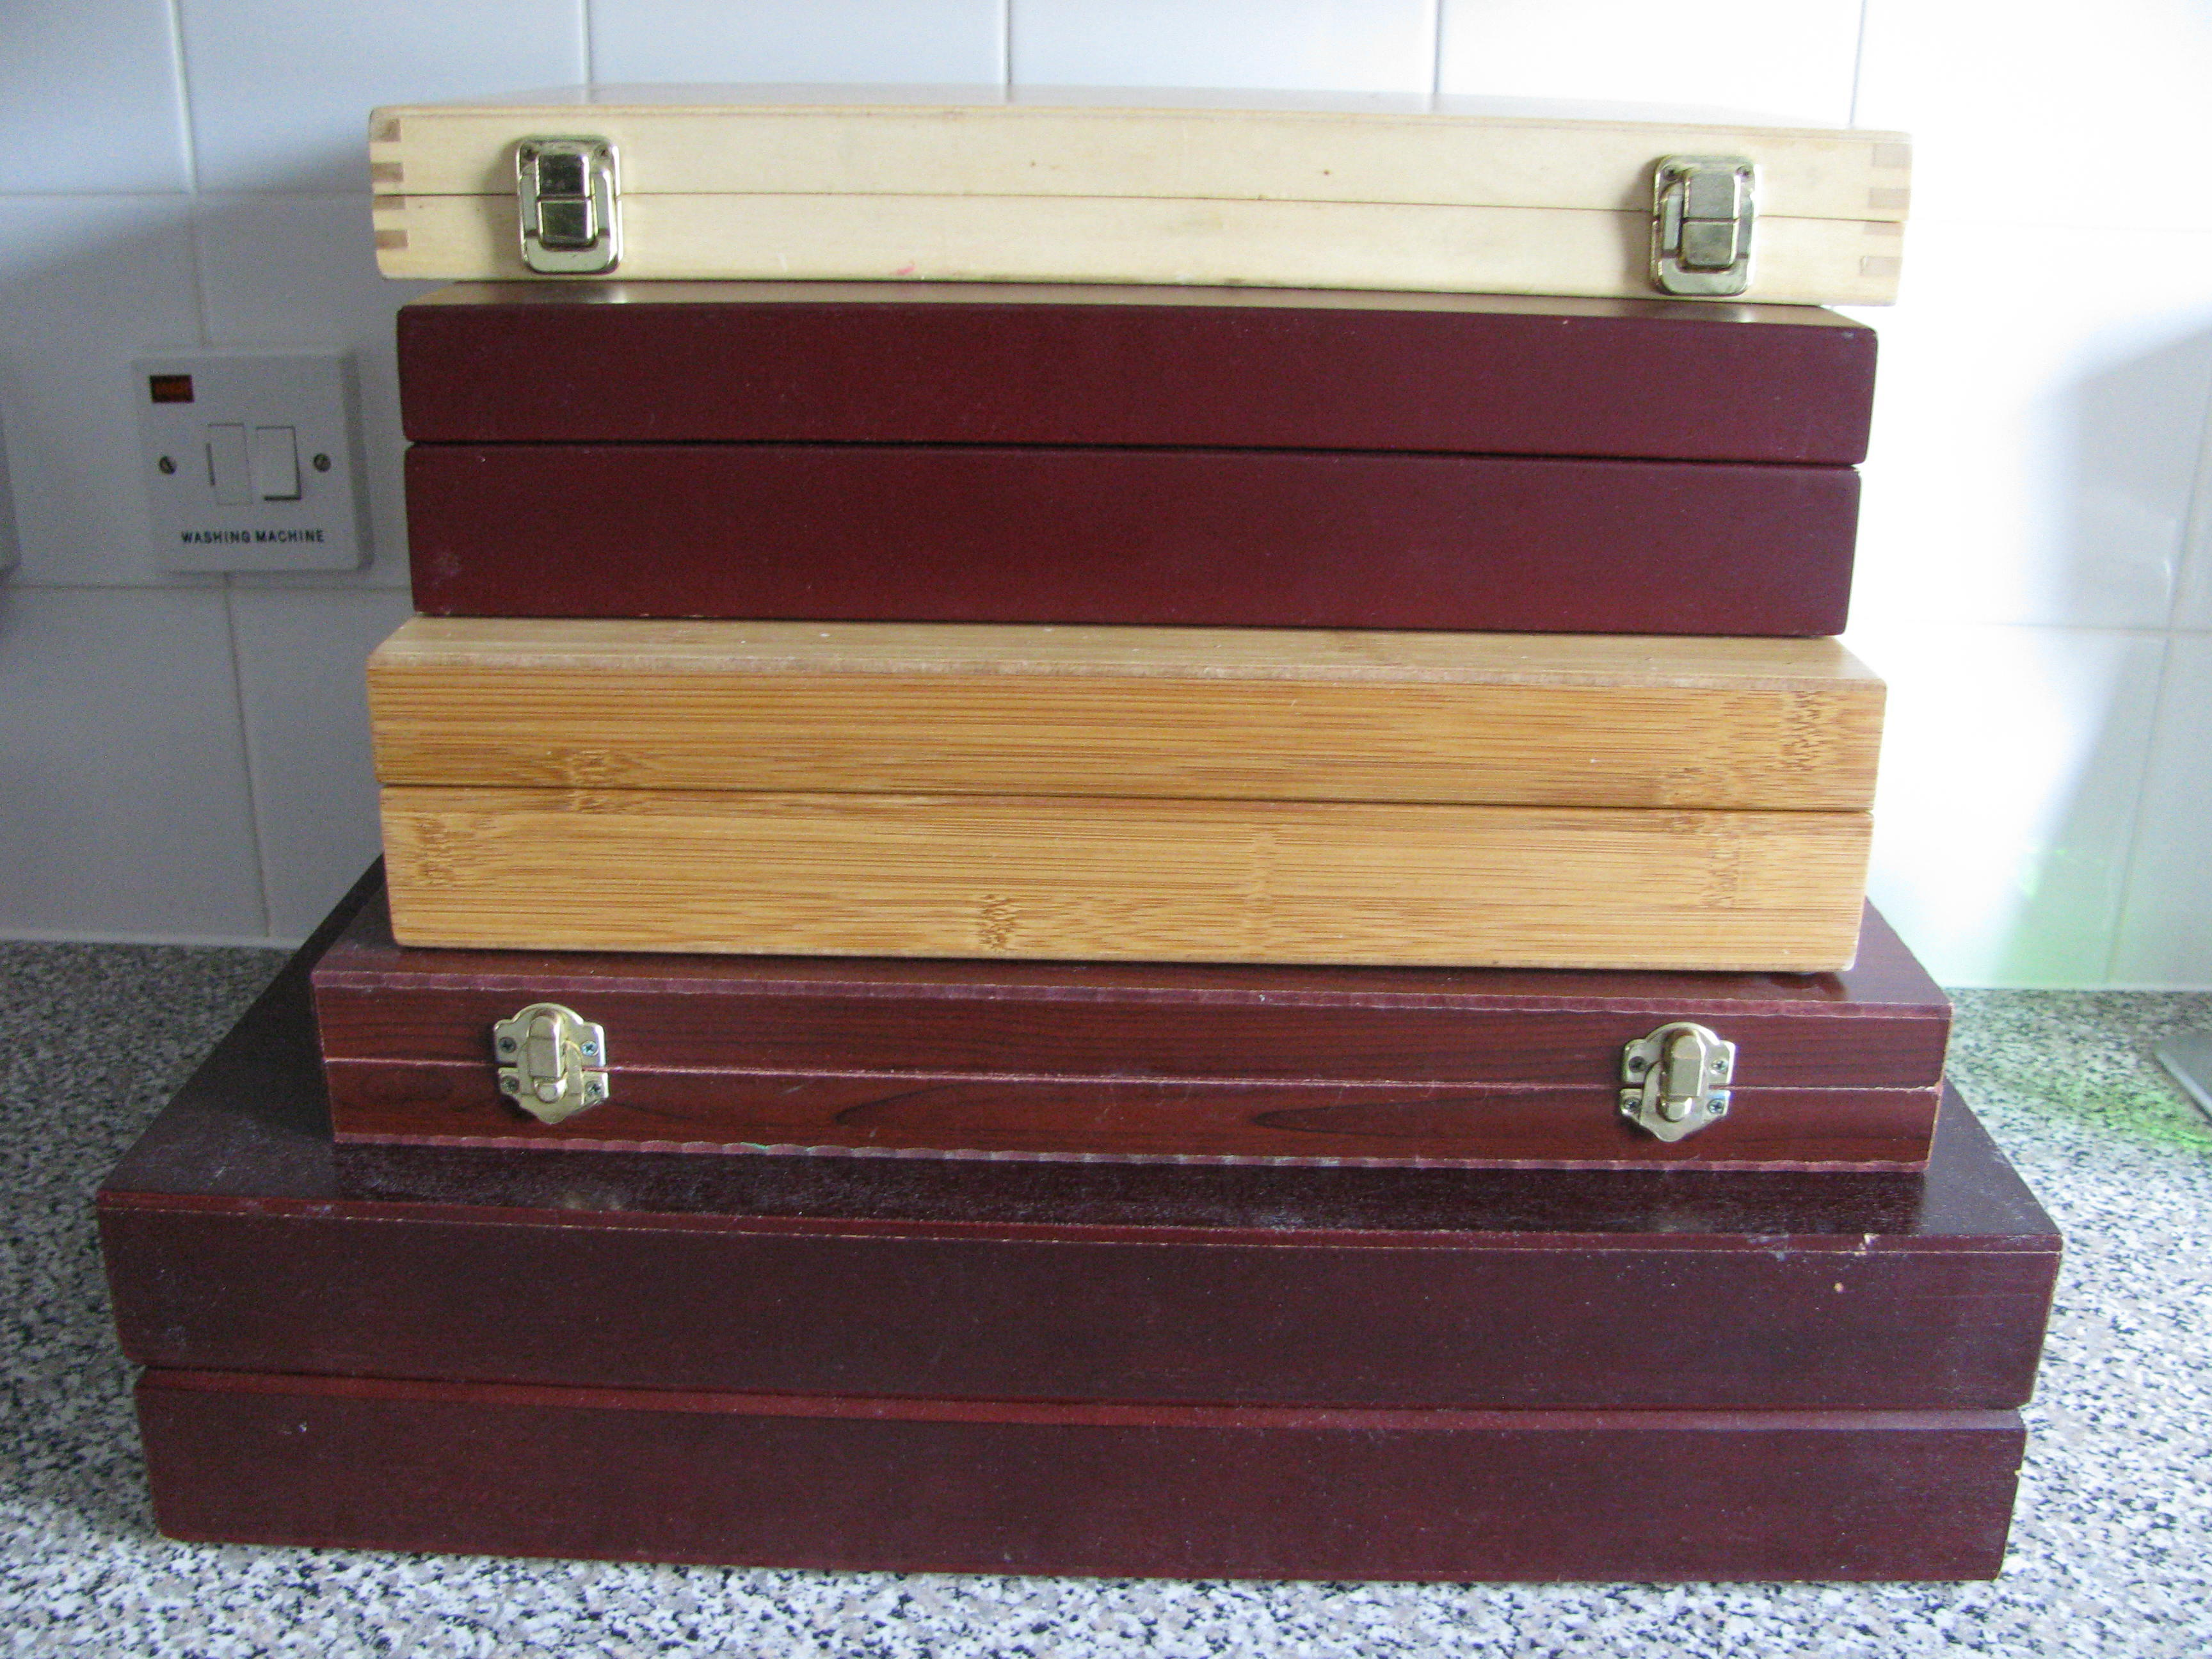 5 x Wooden Display Boxes - Used